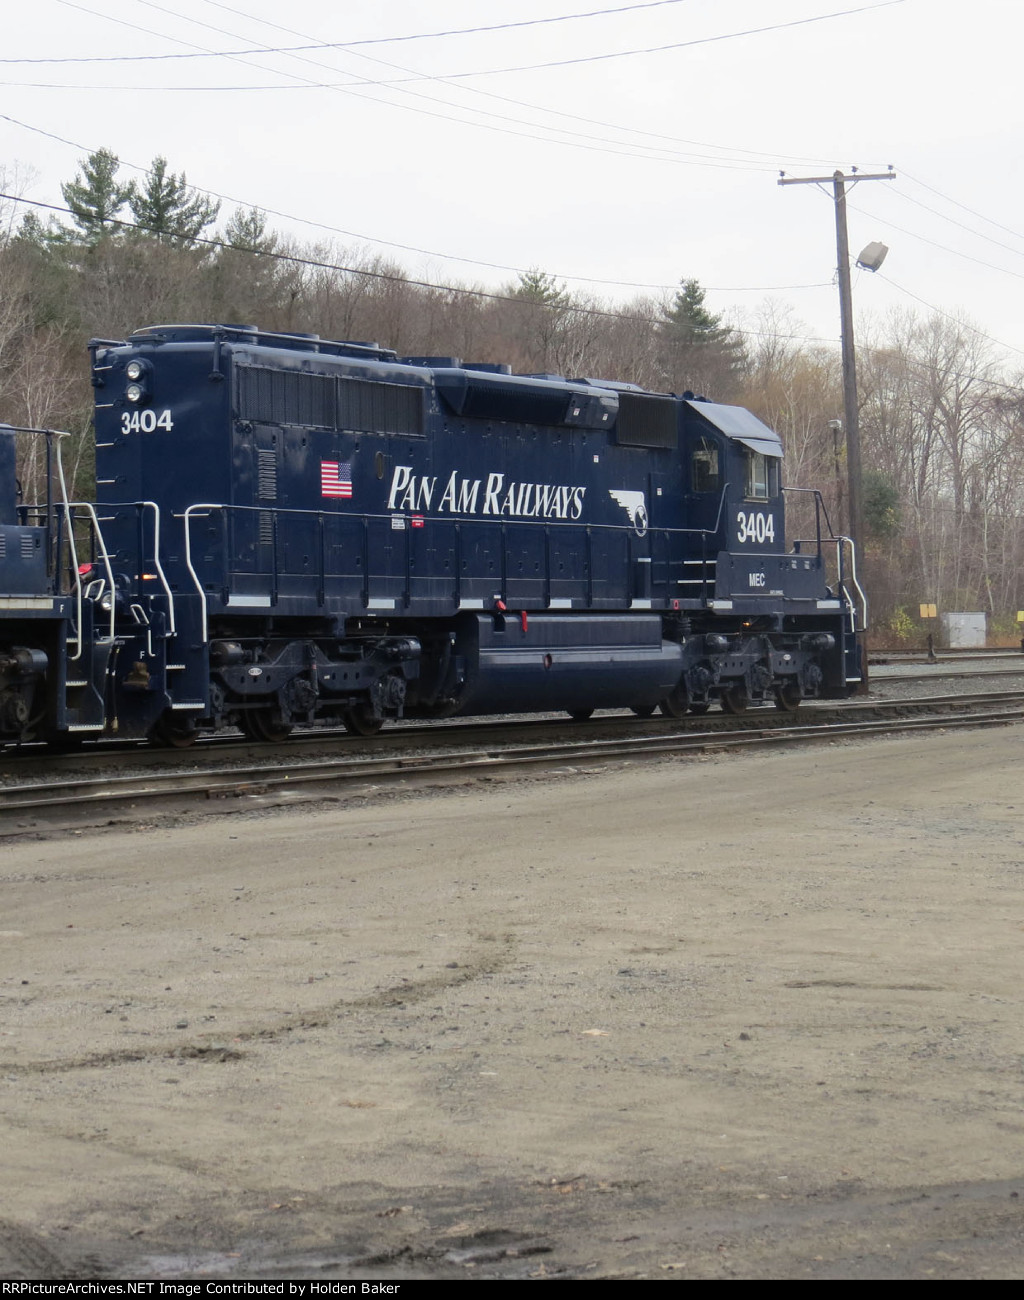 MEC 3404 in brand new Pan Am paint